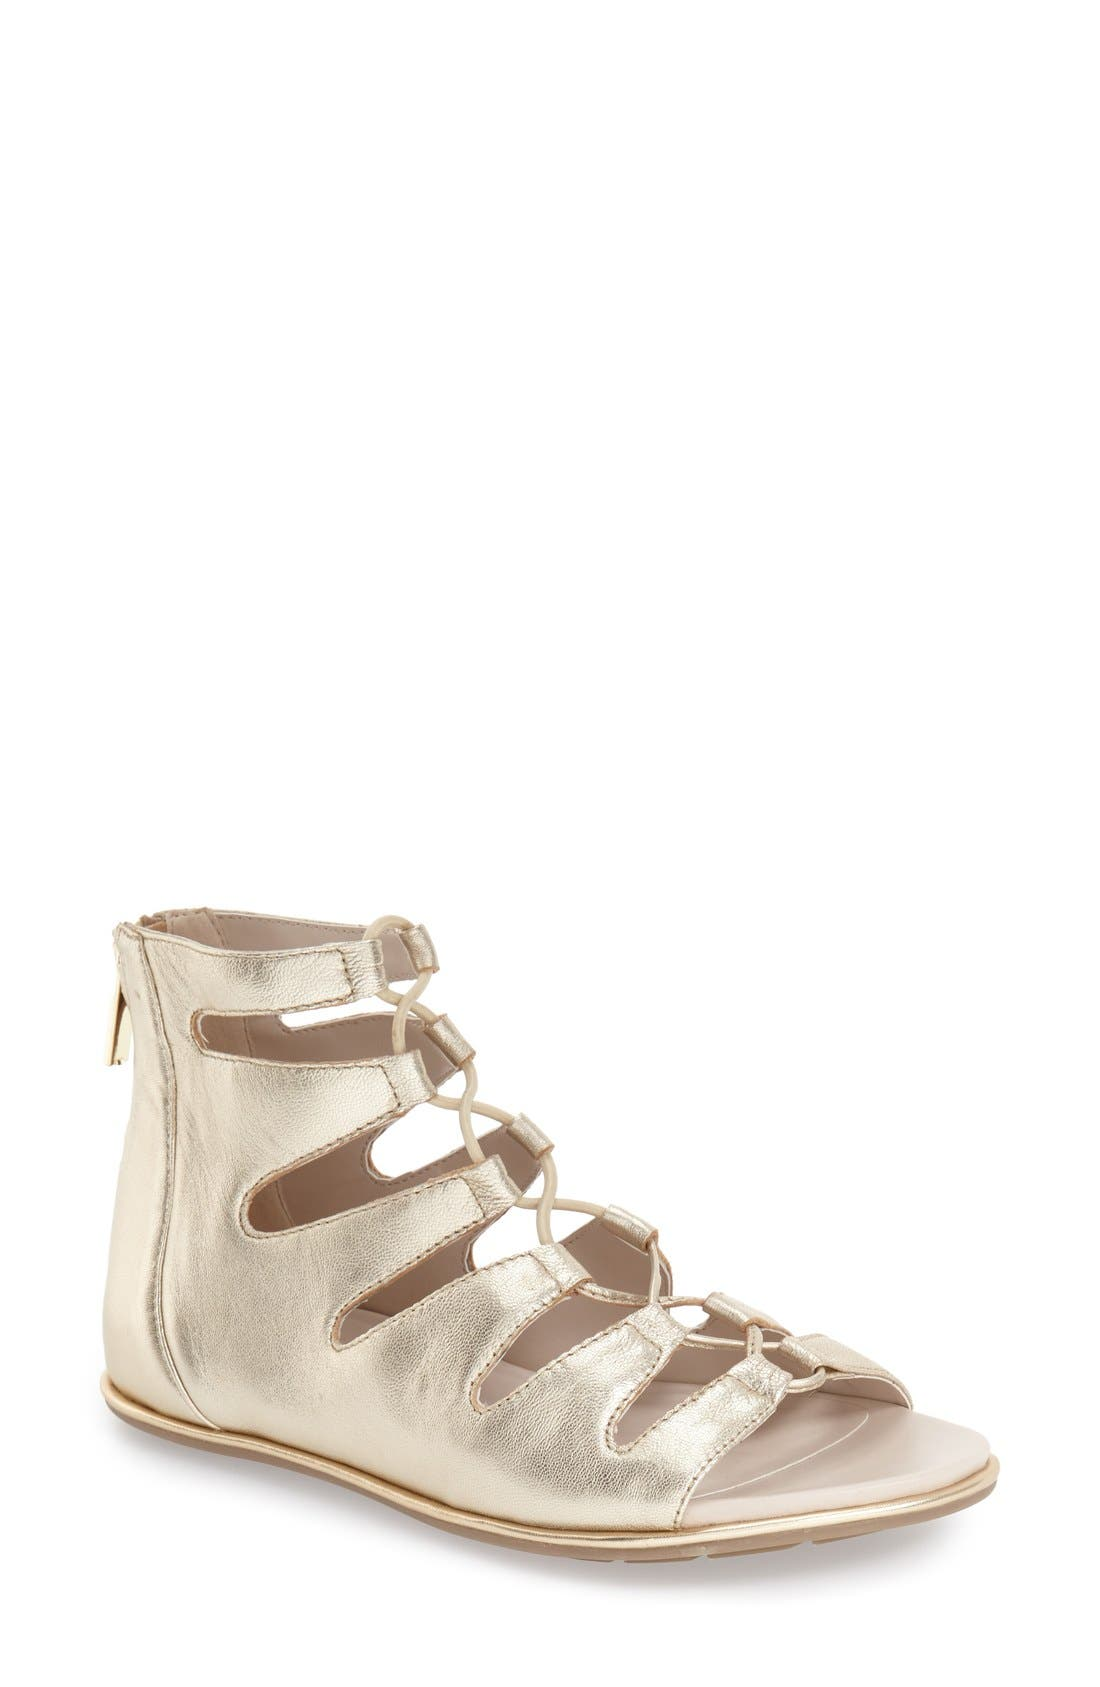 Alternate Image 1 Selected - Kenneth Cole New York 'Ollie' Cage Sandal (Women)